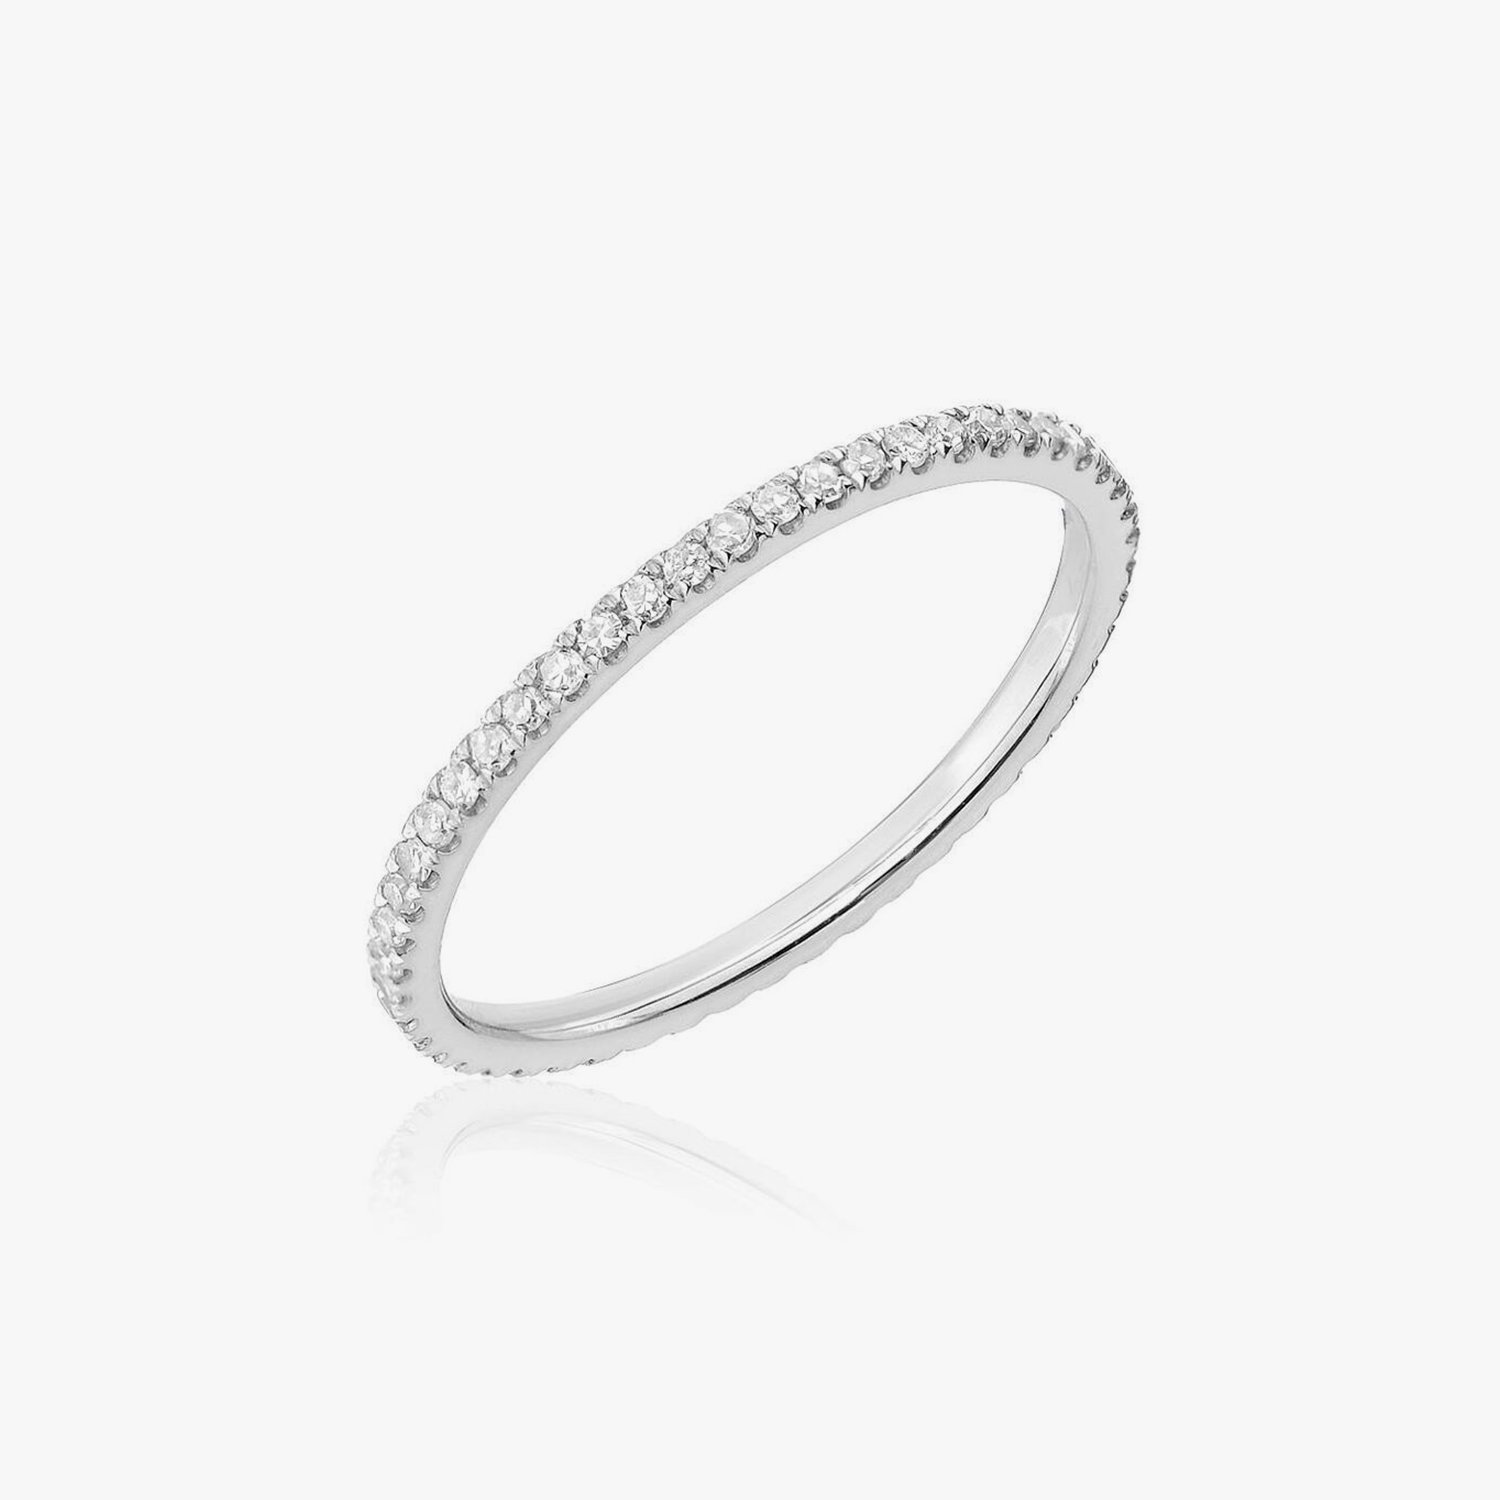 enticement hearts beaverbrooks gold band on bands rings ring jewellery white large platinum context half fire diamond eternity